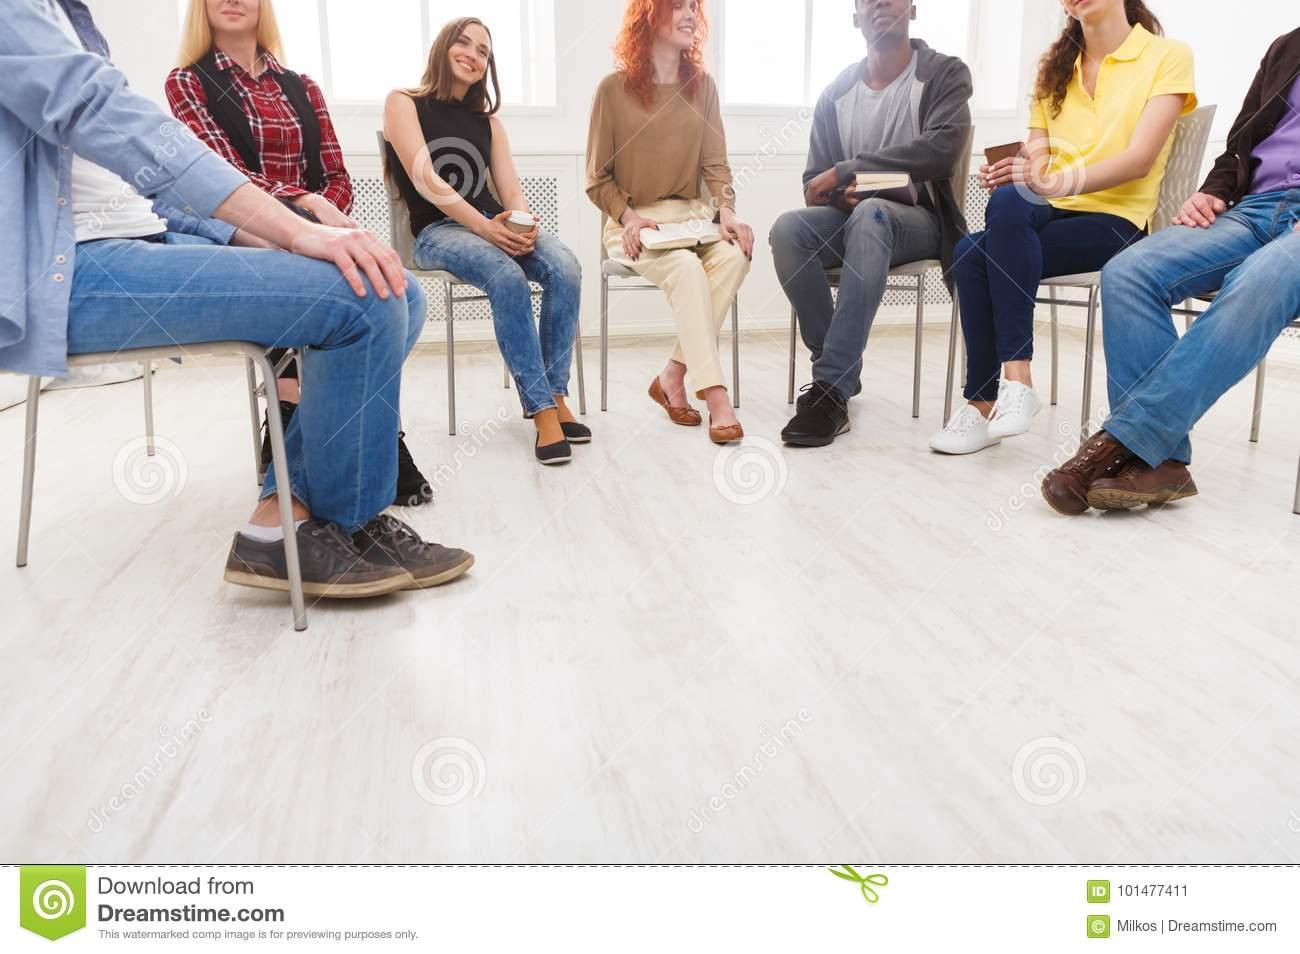 Meeting of support group, copy space